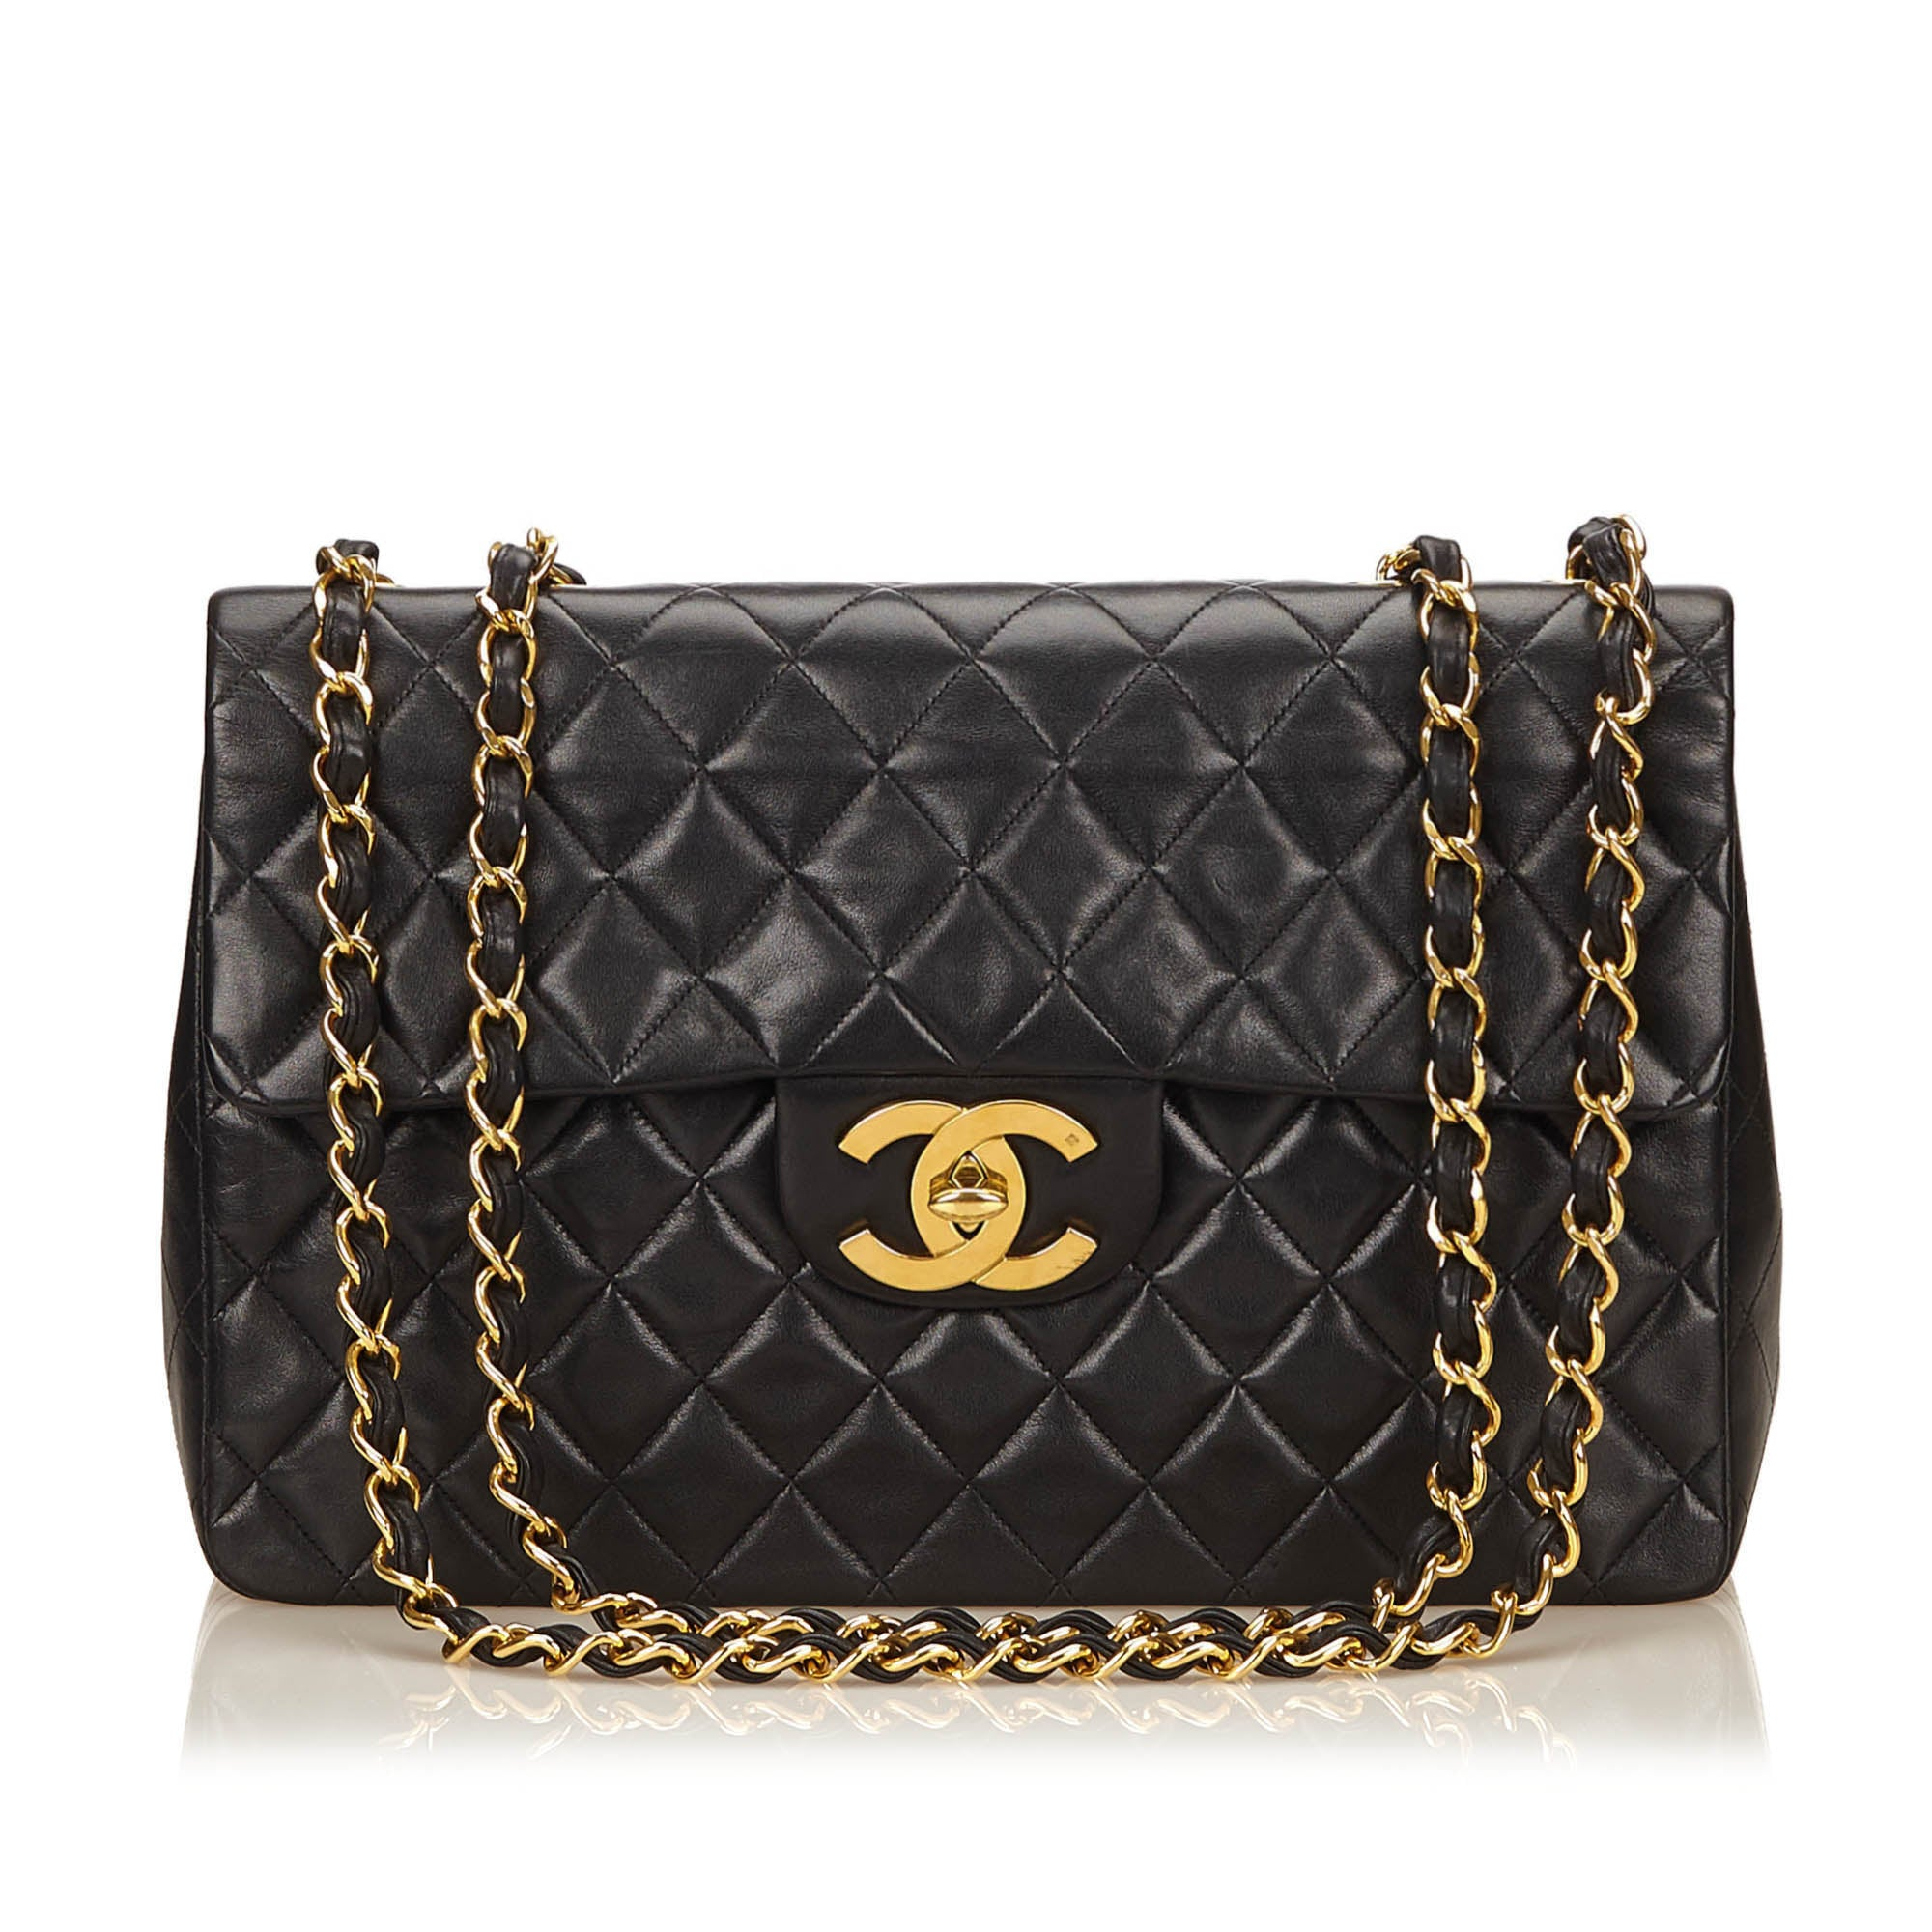 abd71c30b5 Black Maxi Lambskin Classic Flap Bag · Chanel